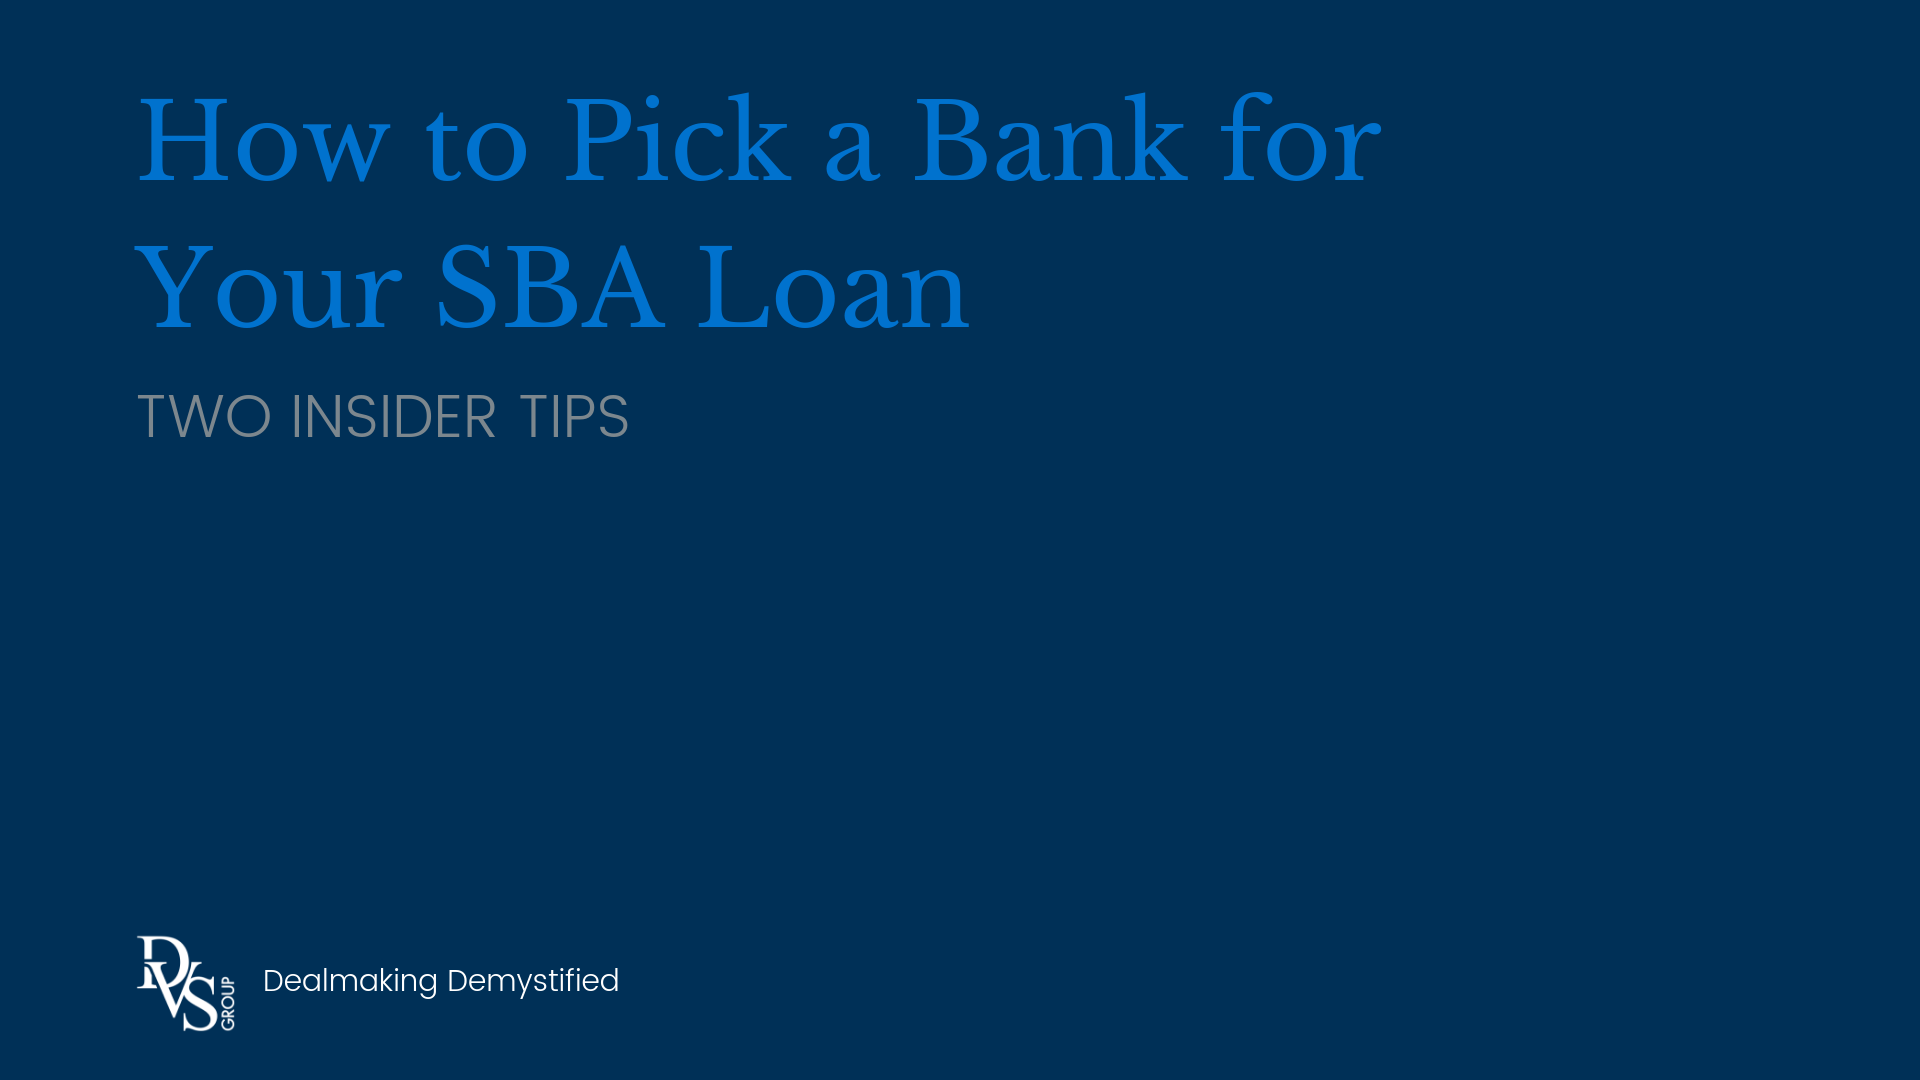 Cover Image: How to Pick a Bank for Your SBA Loan